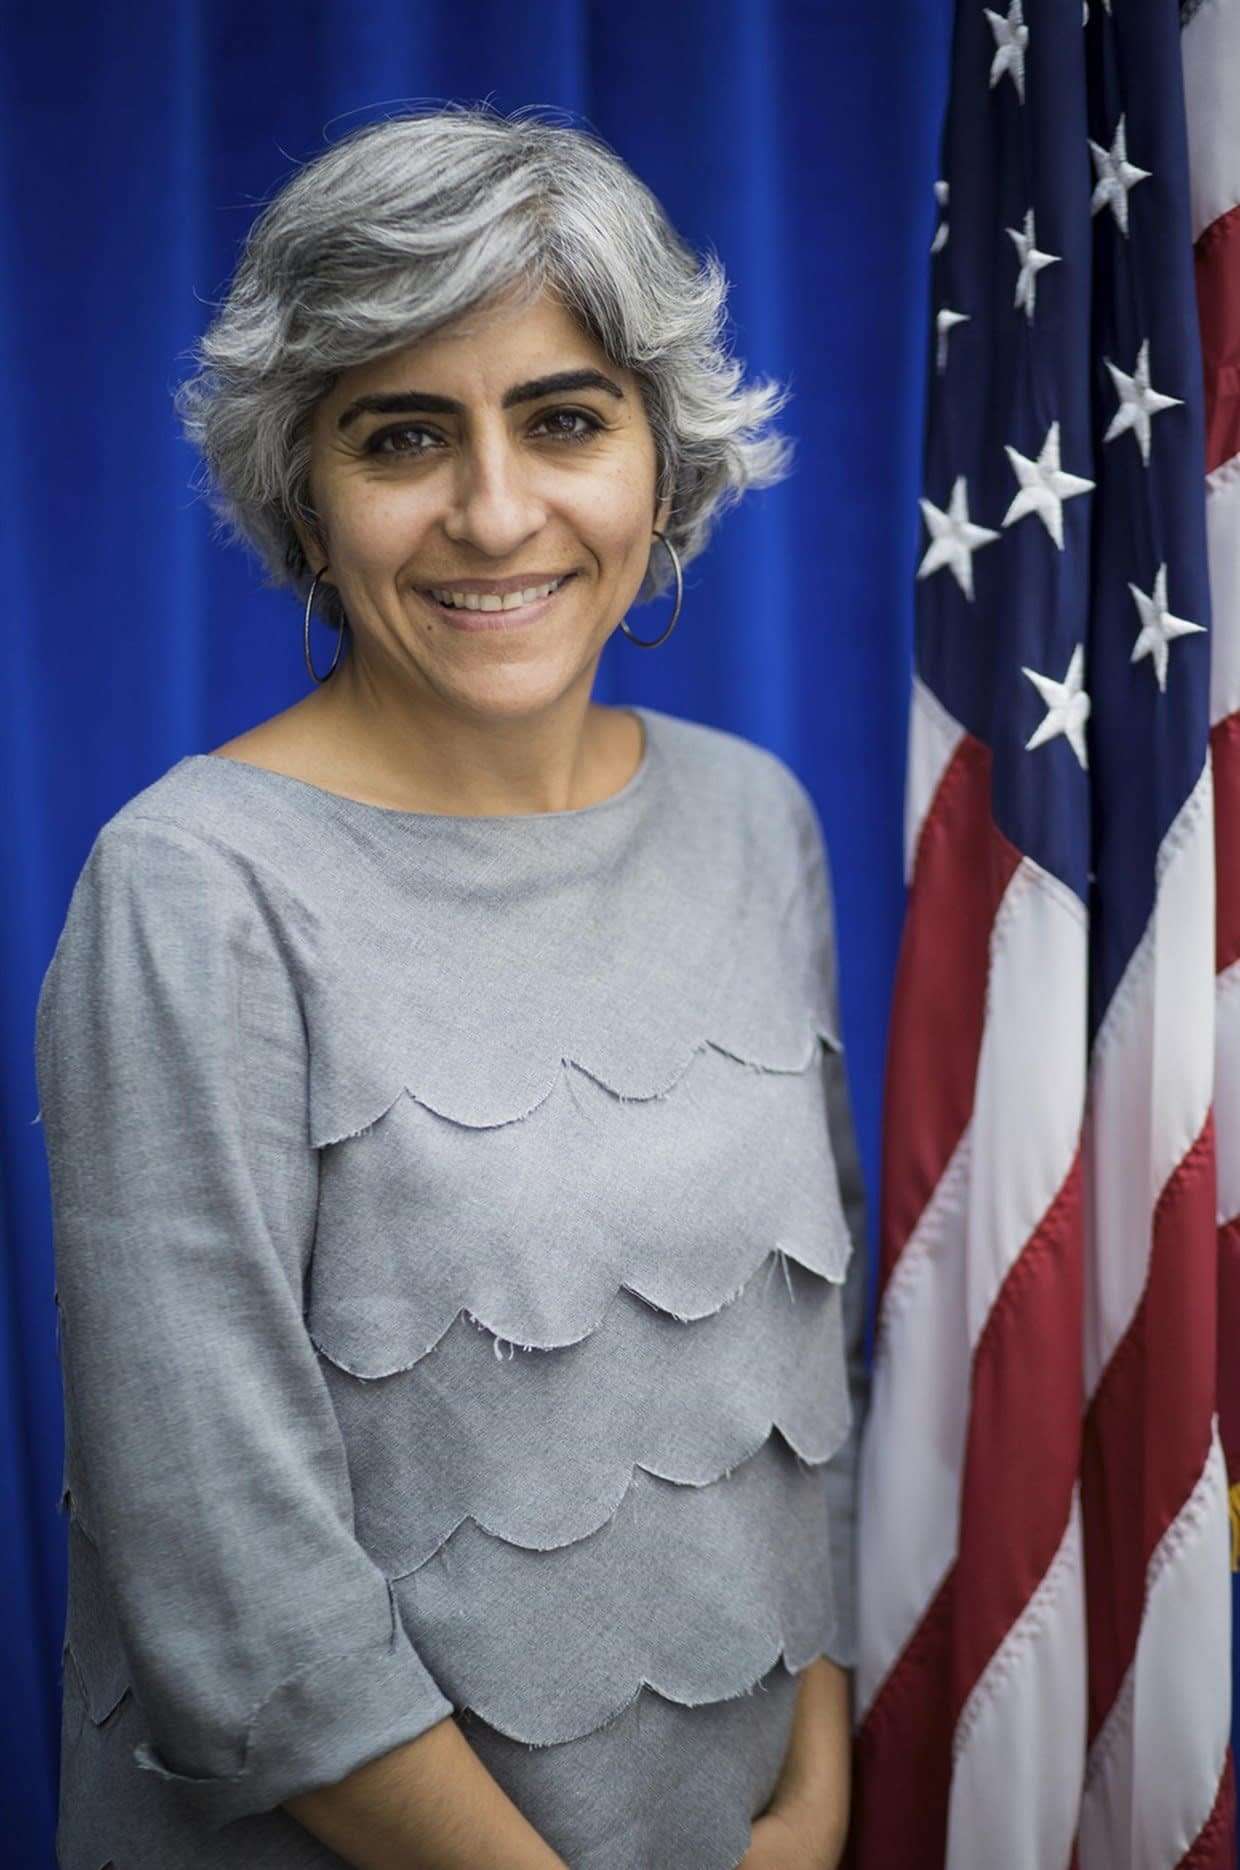 Professional photo of Kiran Ahuja smiling with the American flag